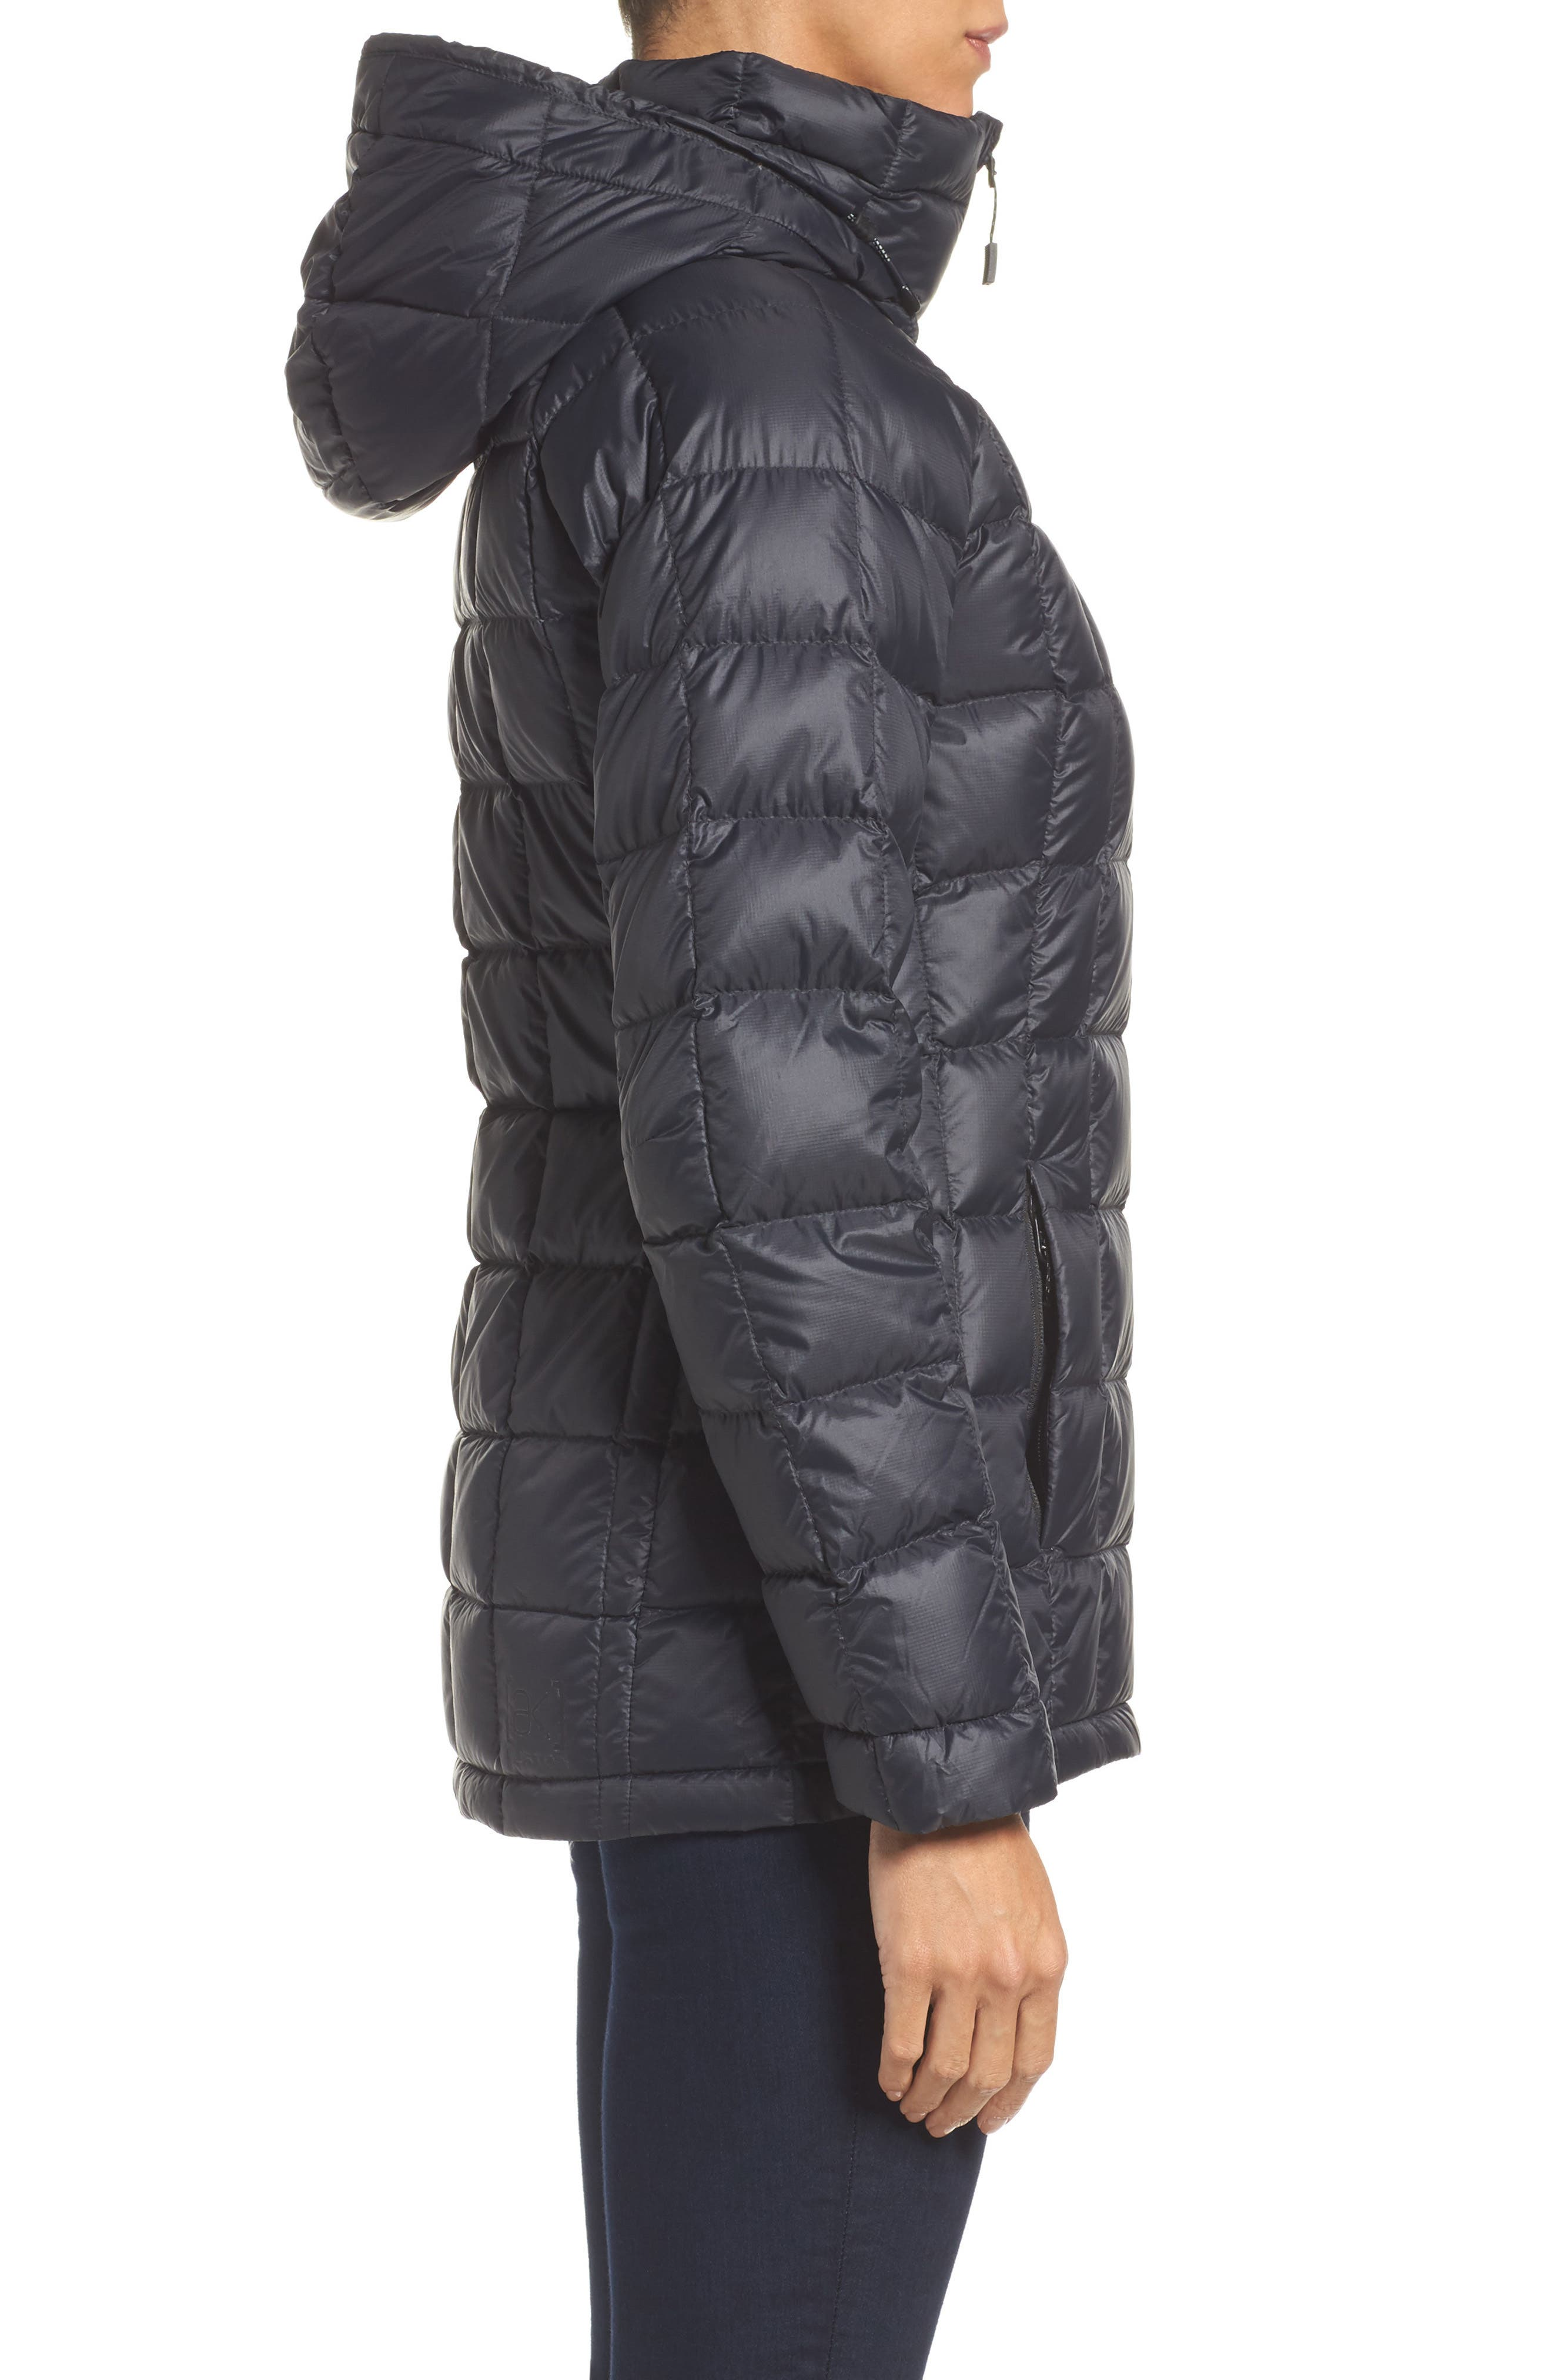 AK Baker Waterproof Quilted Down Insulator Jacket with Removable Hood,                             Alternate thumbnail 3, color,                             True Black